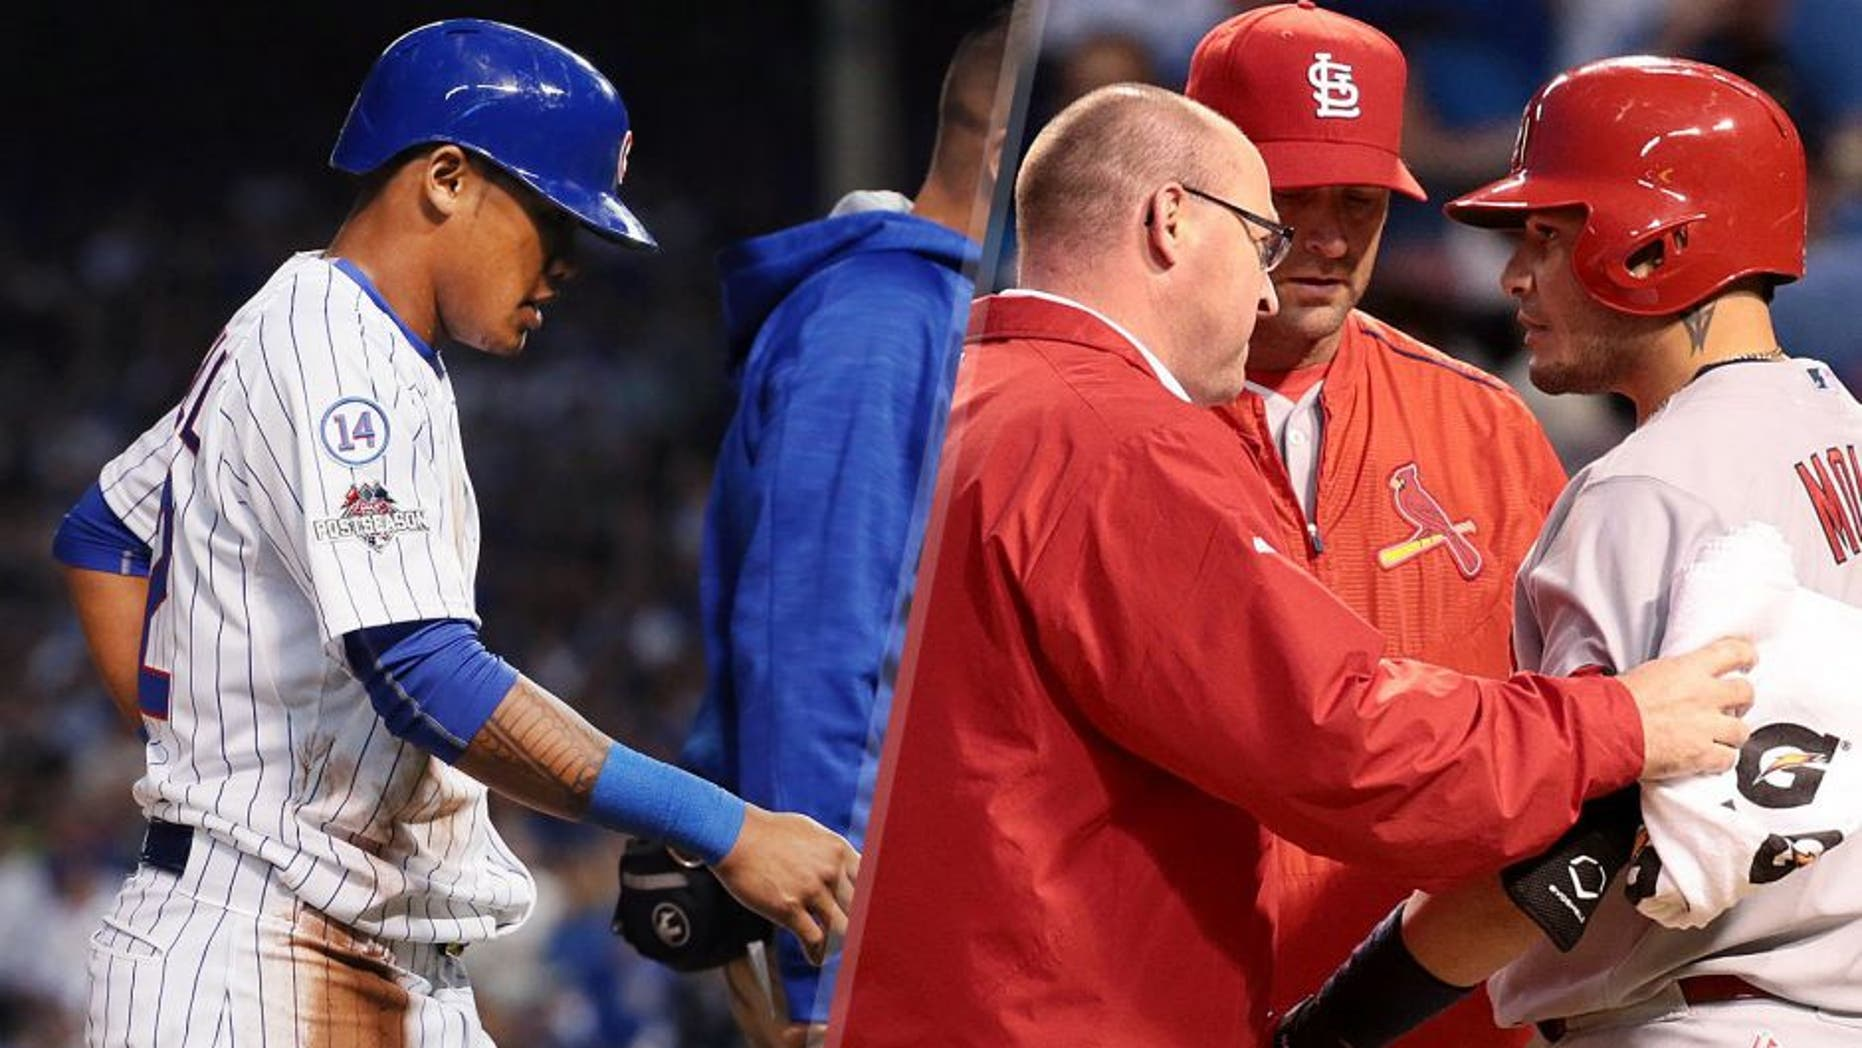 Addison Russell #22 of the Chicago Cubs leaves the field after suffering an apparent injury in the fourth inning against the St. Louis Cardinals during game three of the National League Division Series at Wrigley Field on October 12, 2015 in Chicago, Illinois. (Photo by Jonathan Daniel/Getty Images) Mike Matheny and a Cardinals trainer check on Yadier Molina during the fourth inning on Monday, Oct. 12, 2015, at Wrigley Field in Chicago. (Robert Cohen/St. Louis Post-Dispatch/TNS via Getty Images)